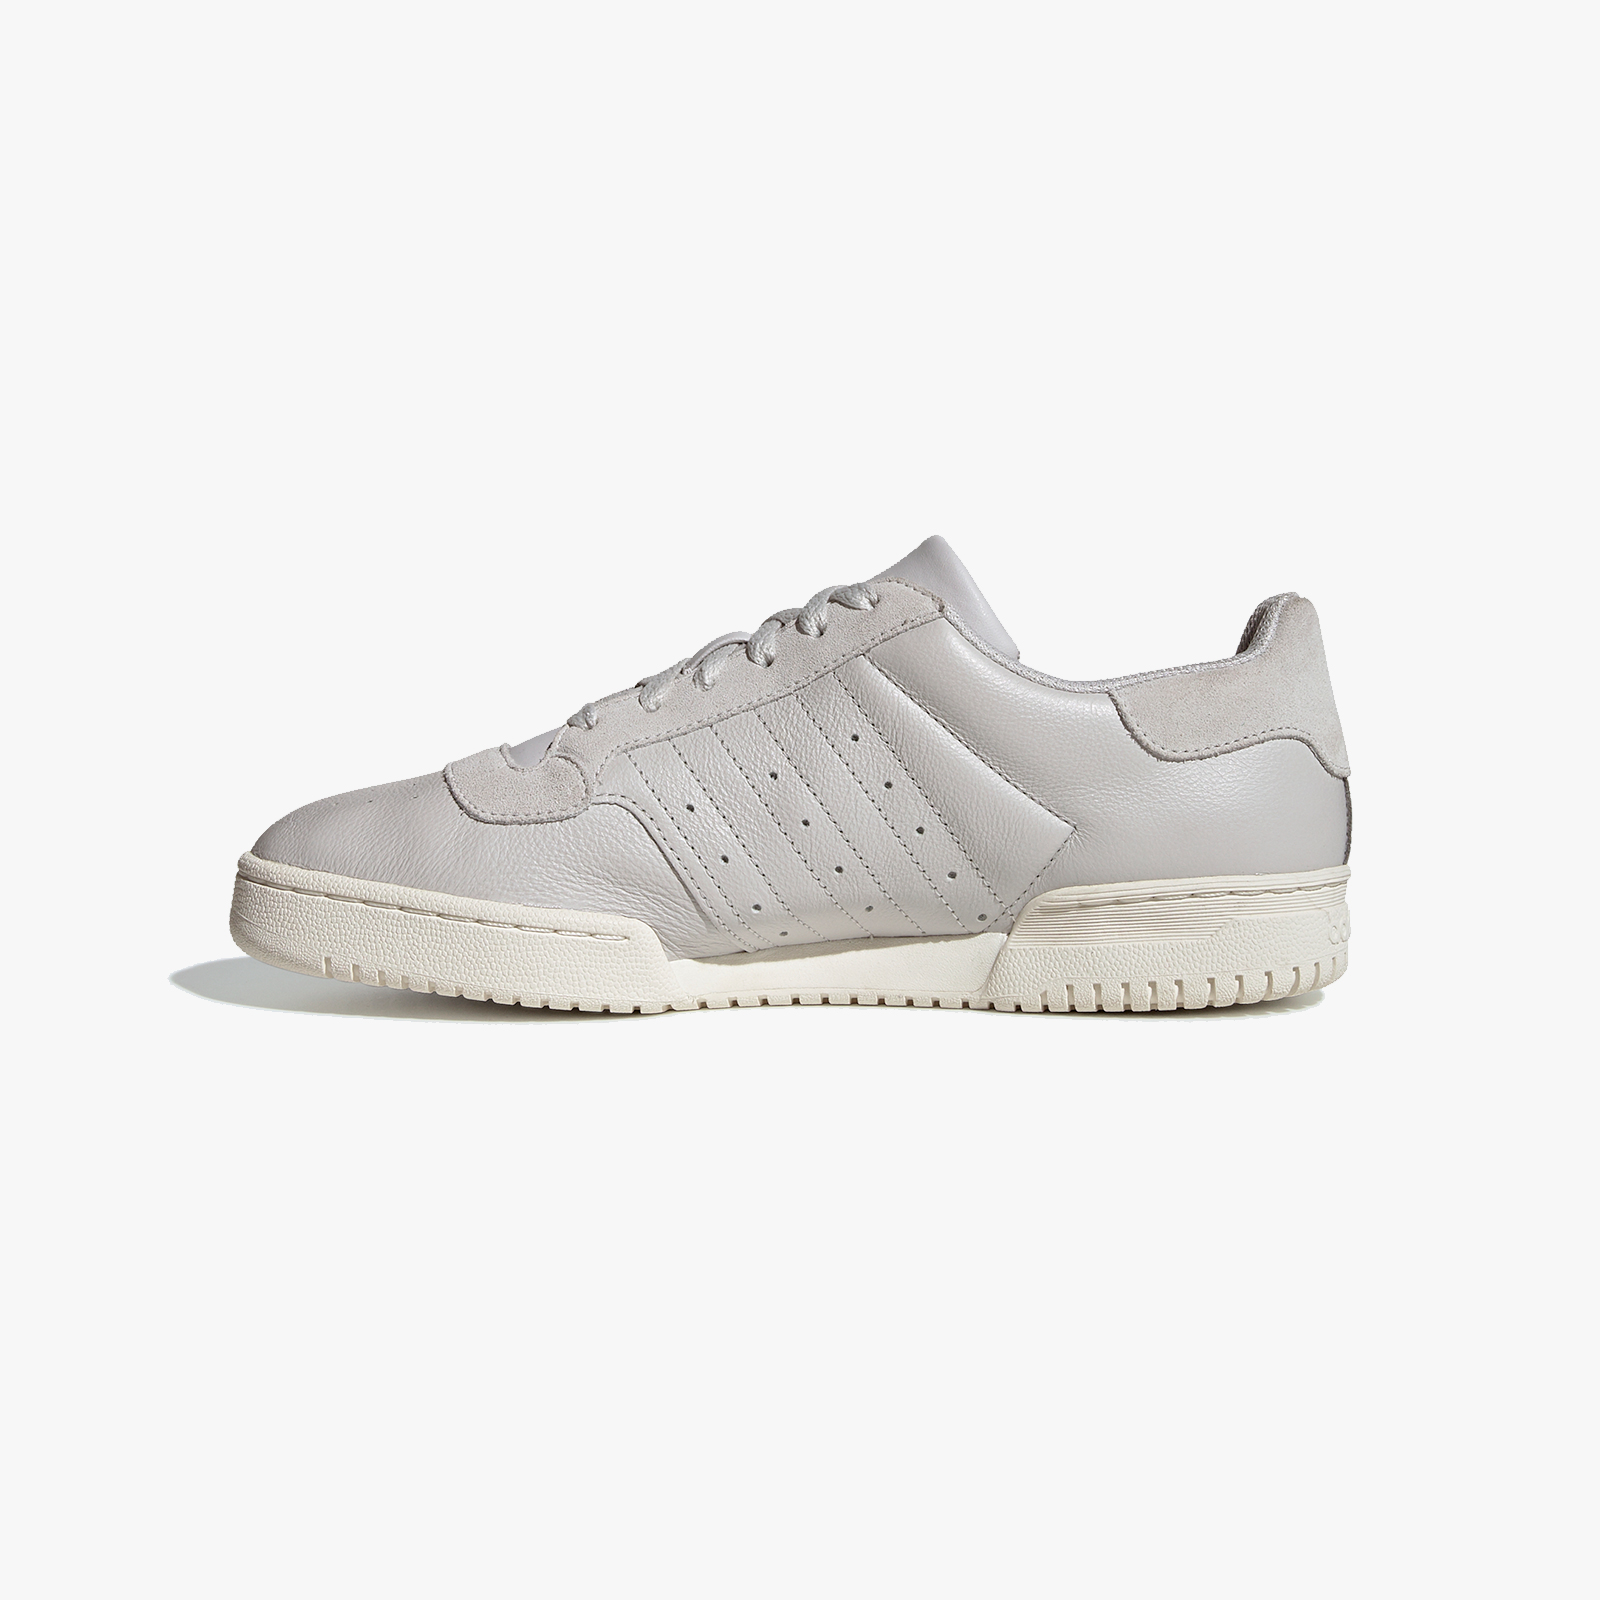 adidas Powerphase Grey One EF2902 Release Date SBD